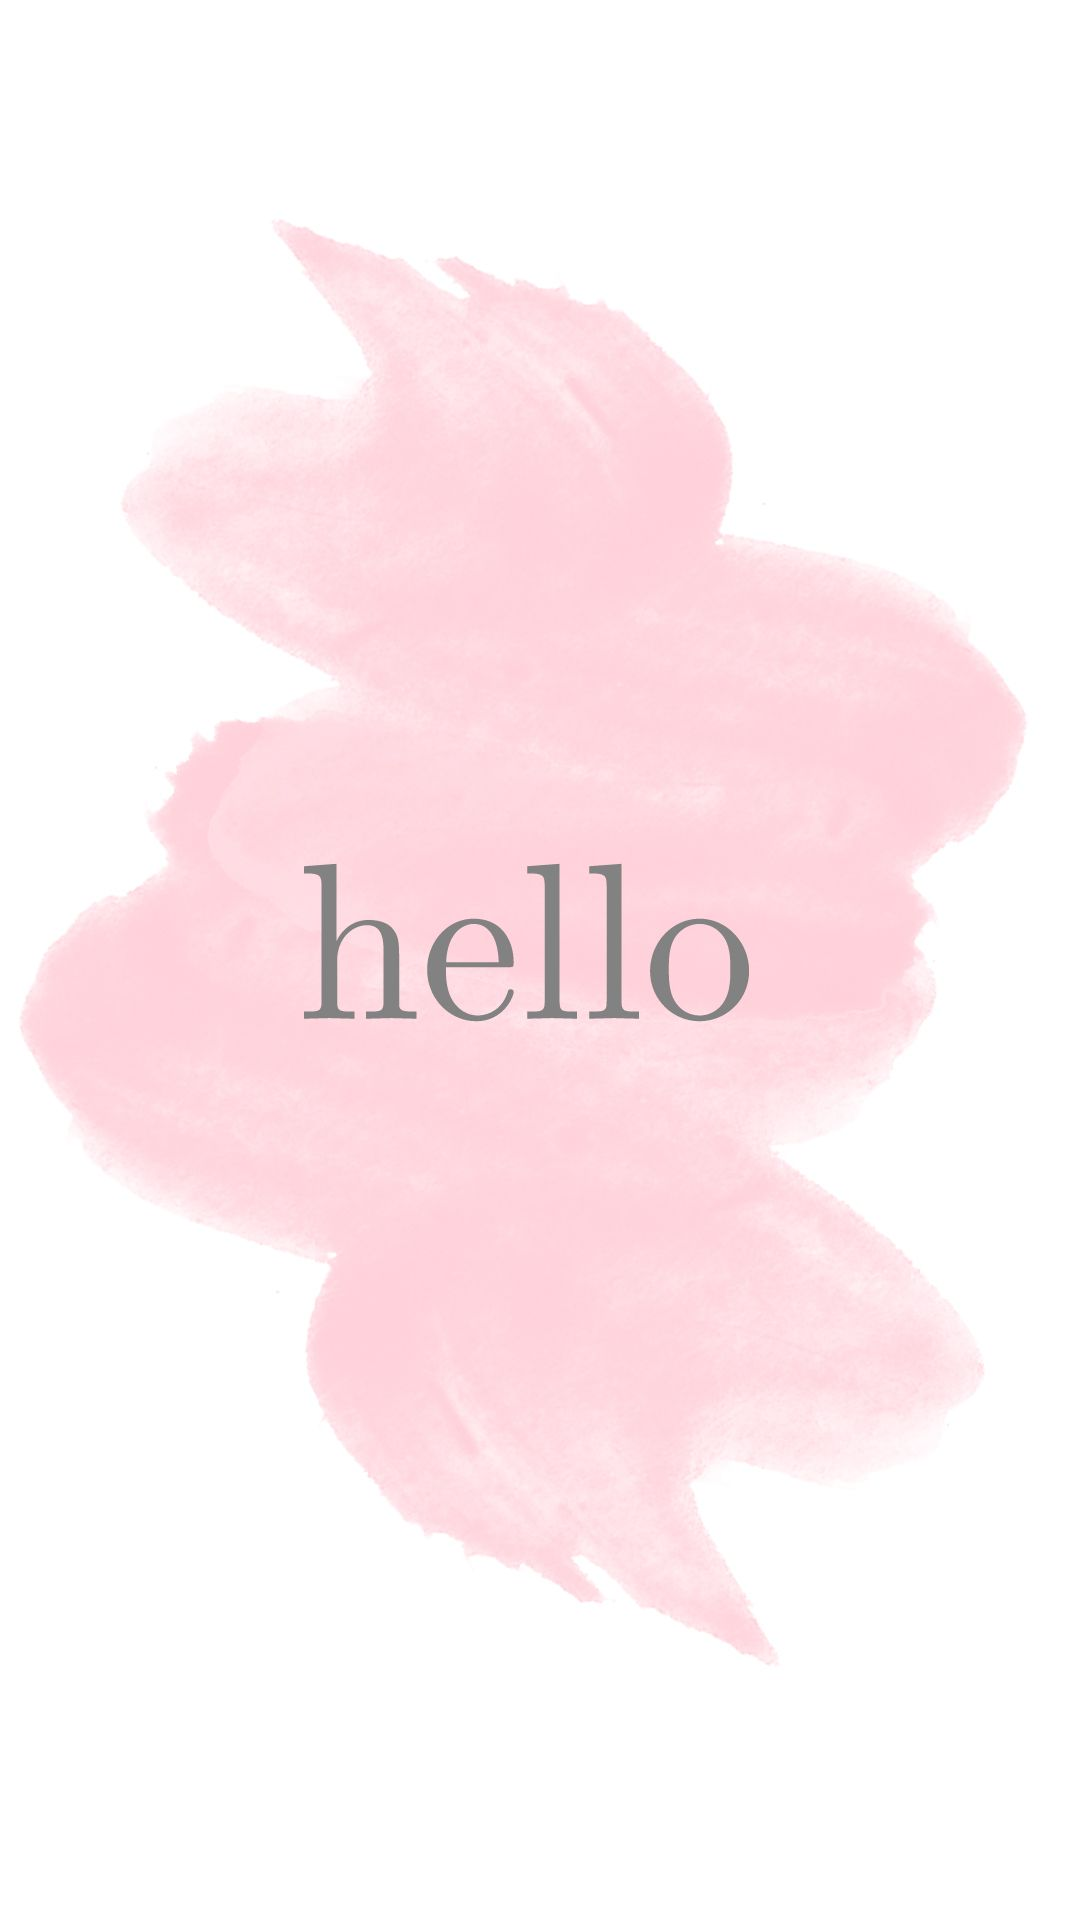 iphone-6-wallpaper-hello-watercolor 1,080×1,920 pixels | my